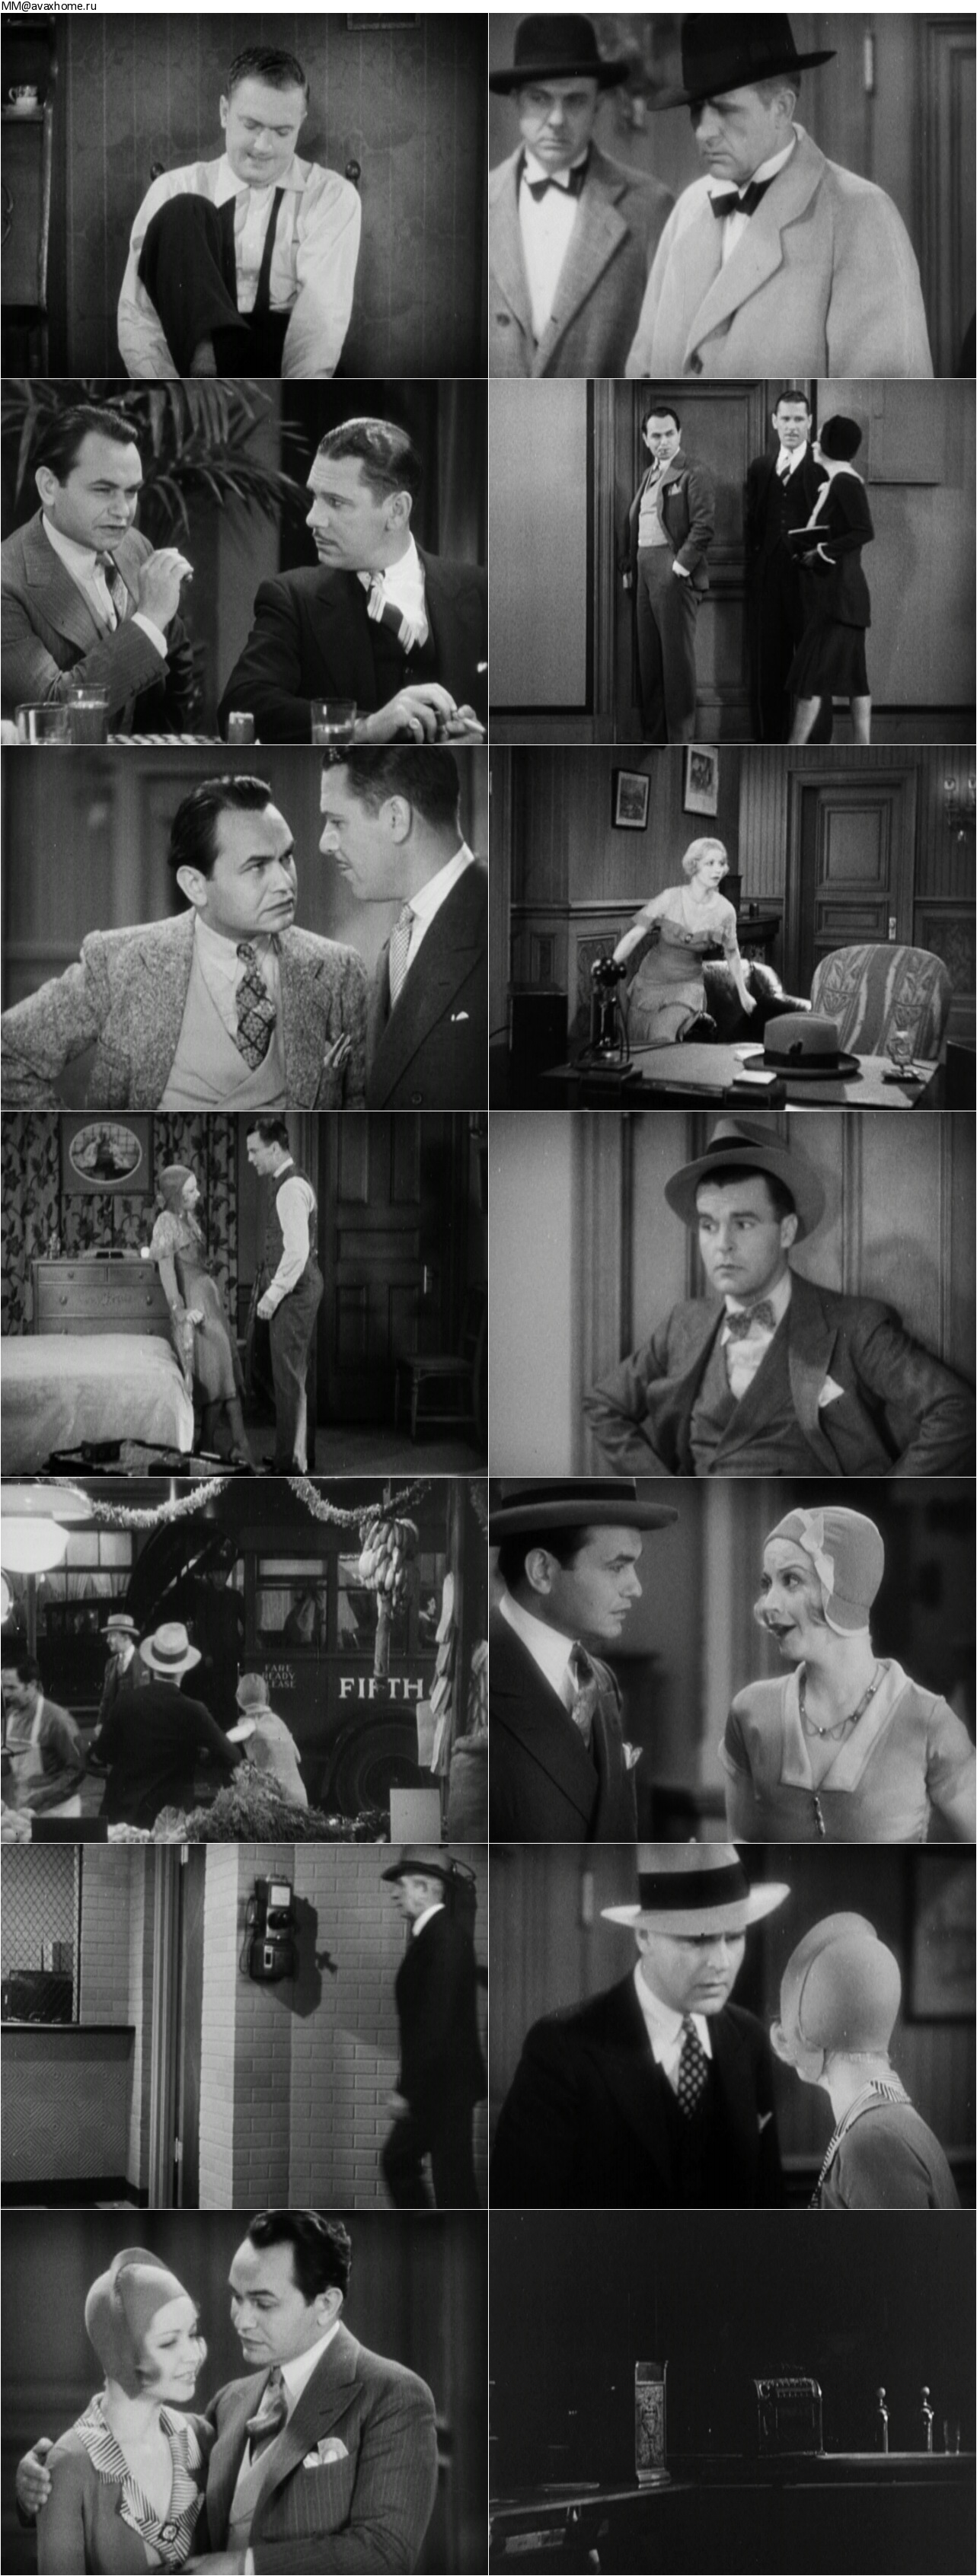 The Widow from Chicago (1930)